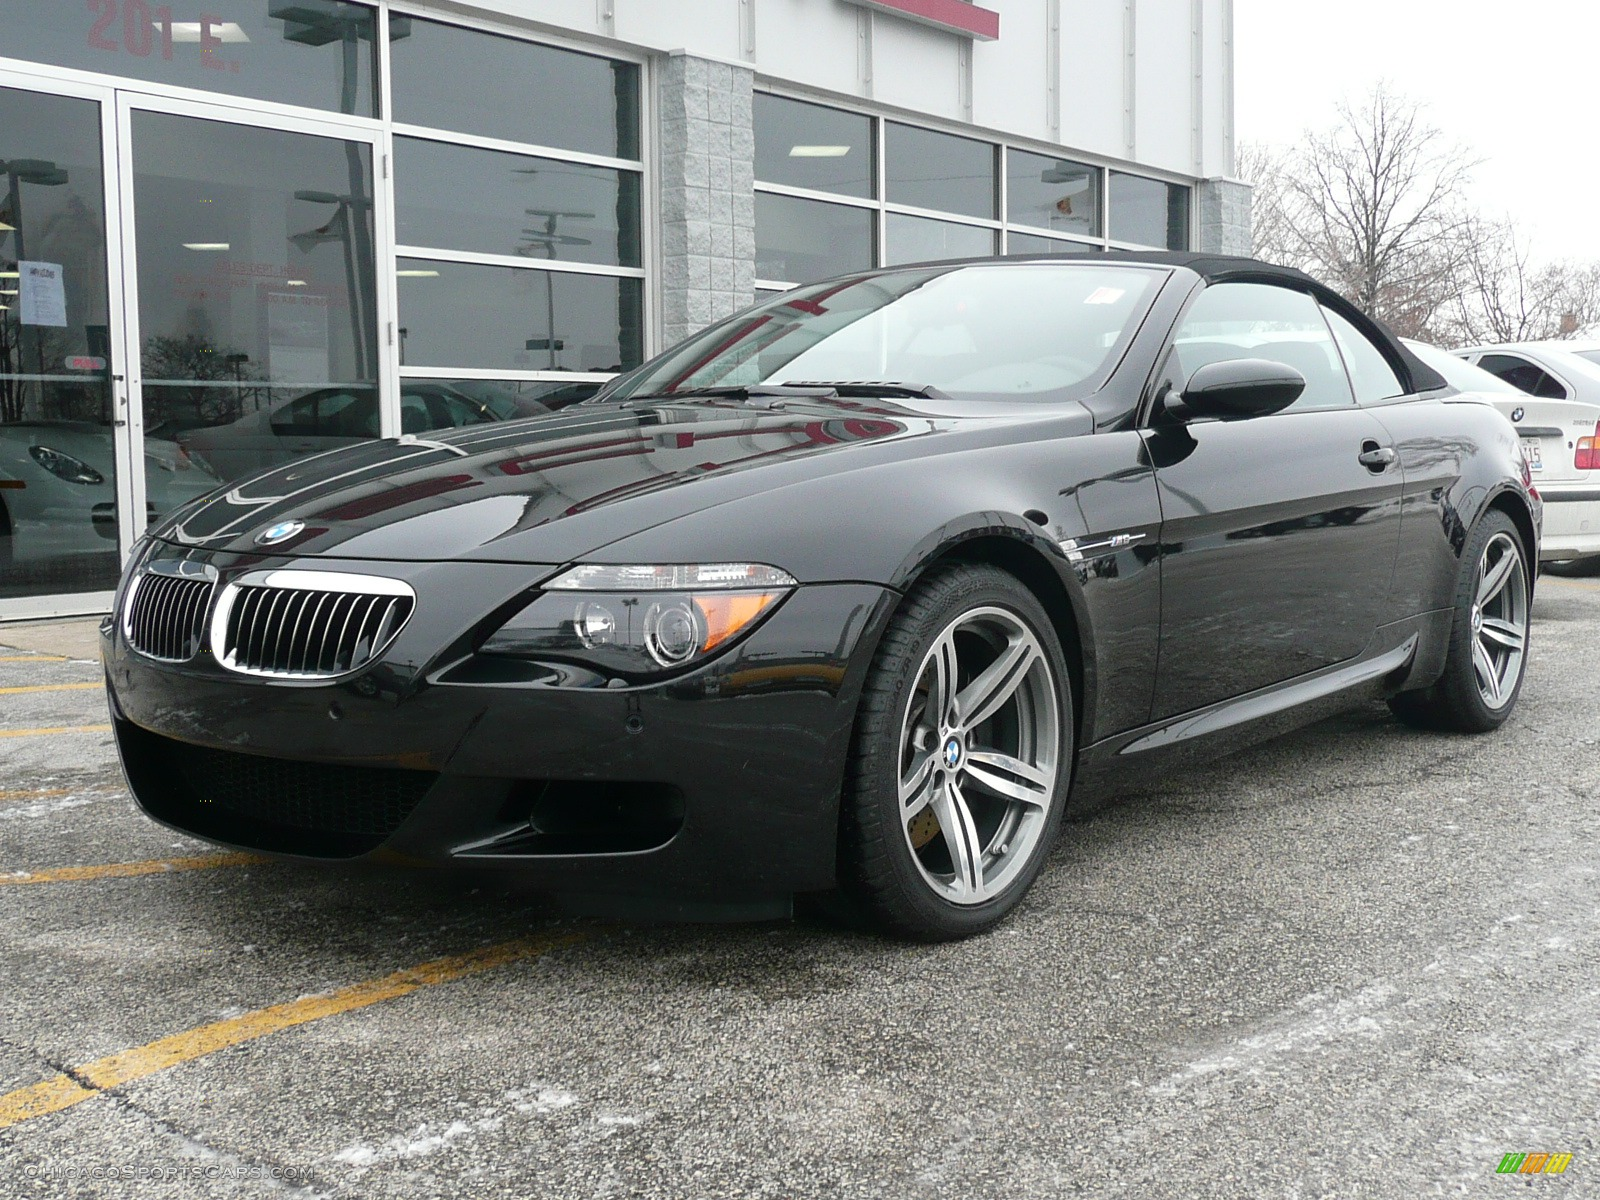 2007 bmw m6 convertible in black 532204 cars for sale in illinois. Black Bedroom Furniture Sets. Home Design Ideas